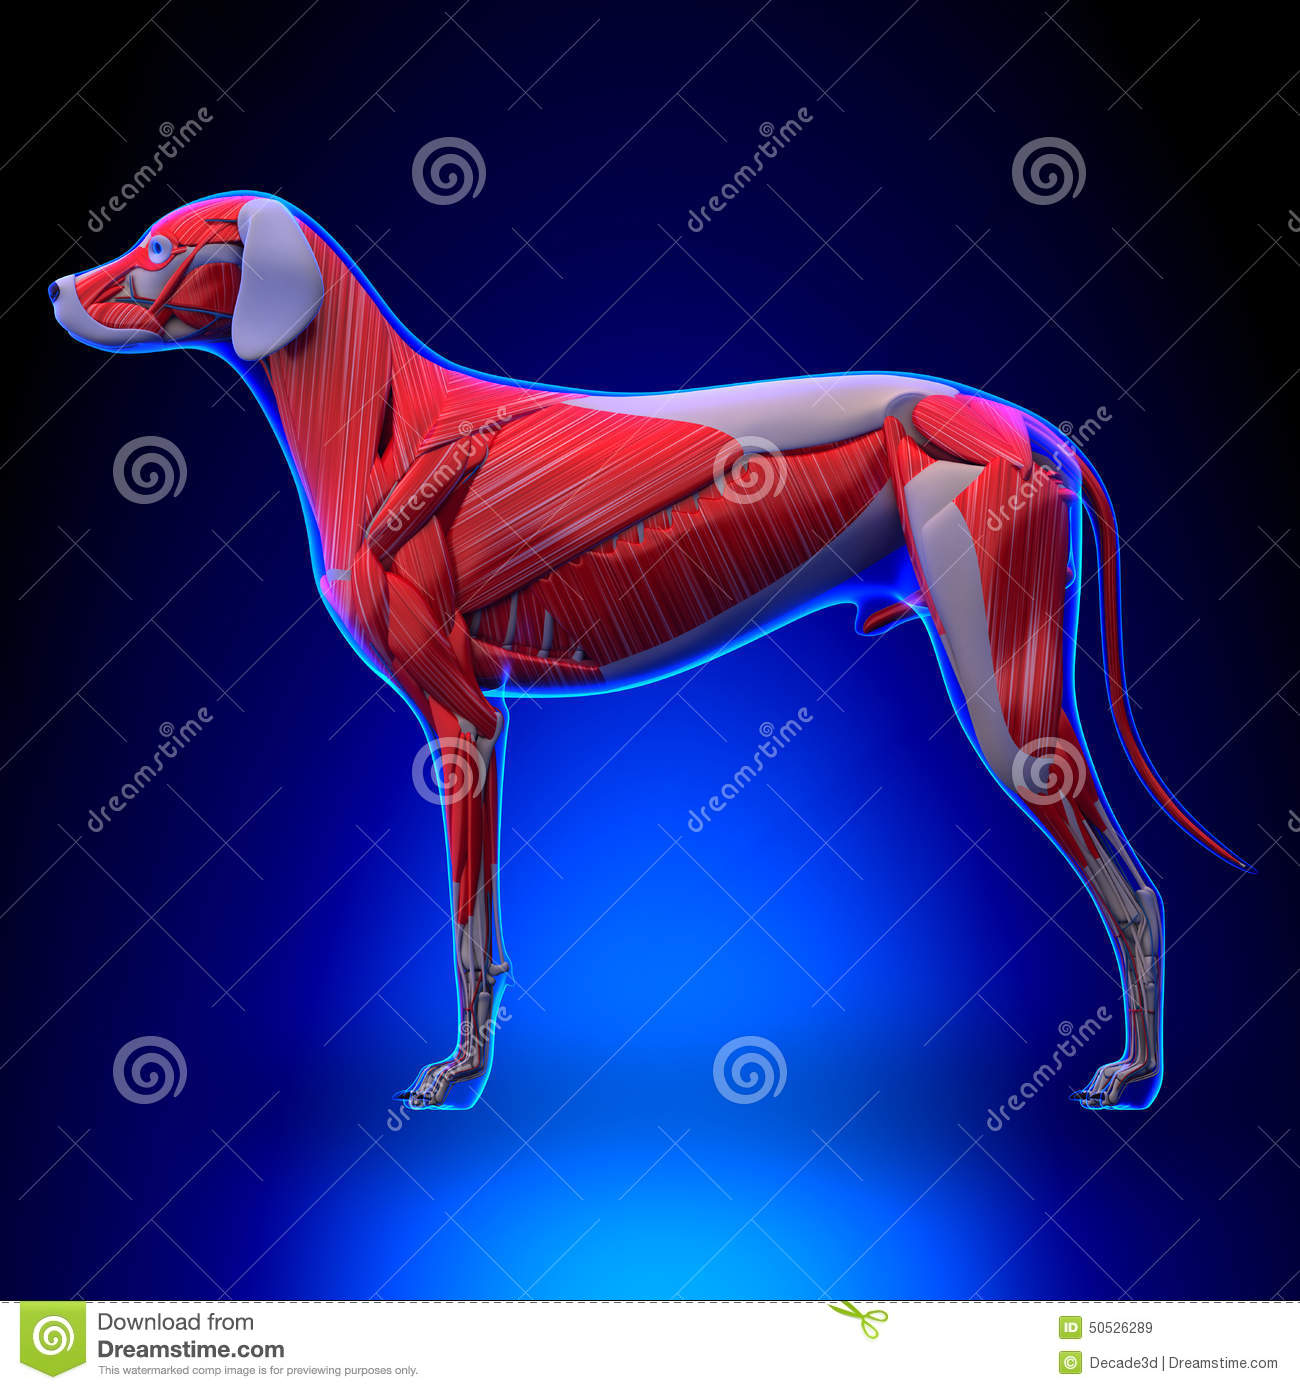 Dog Muscles Anatomy - Muscular System Of The Dog Stock Illustration ...